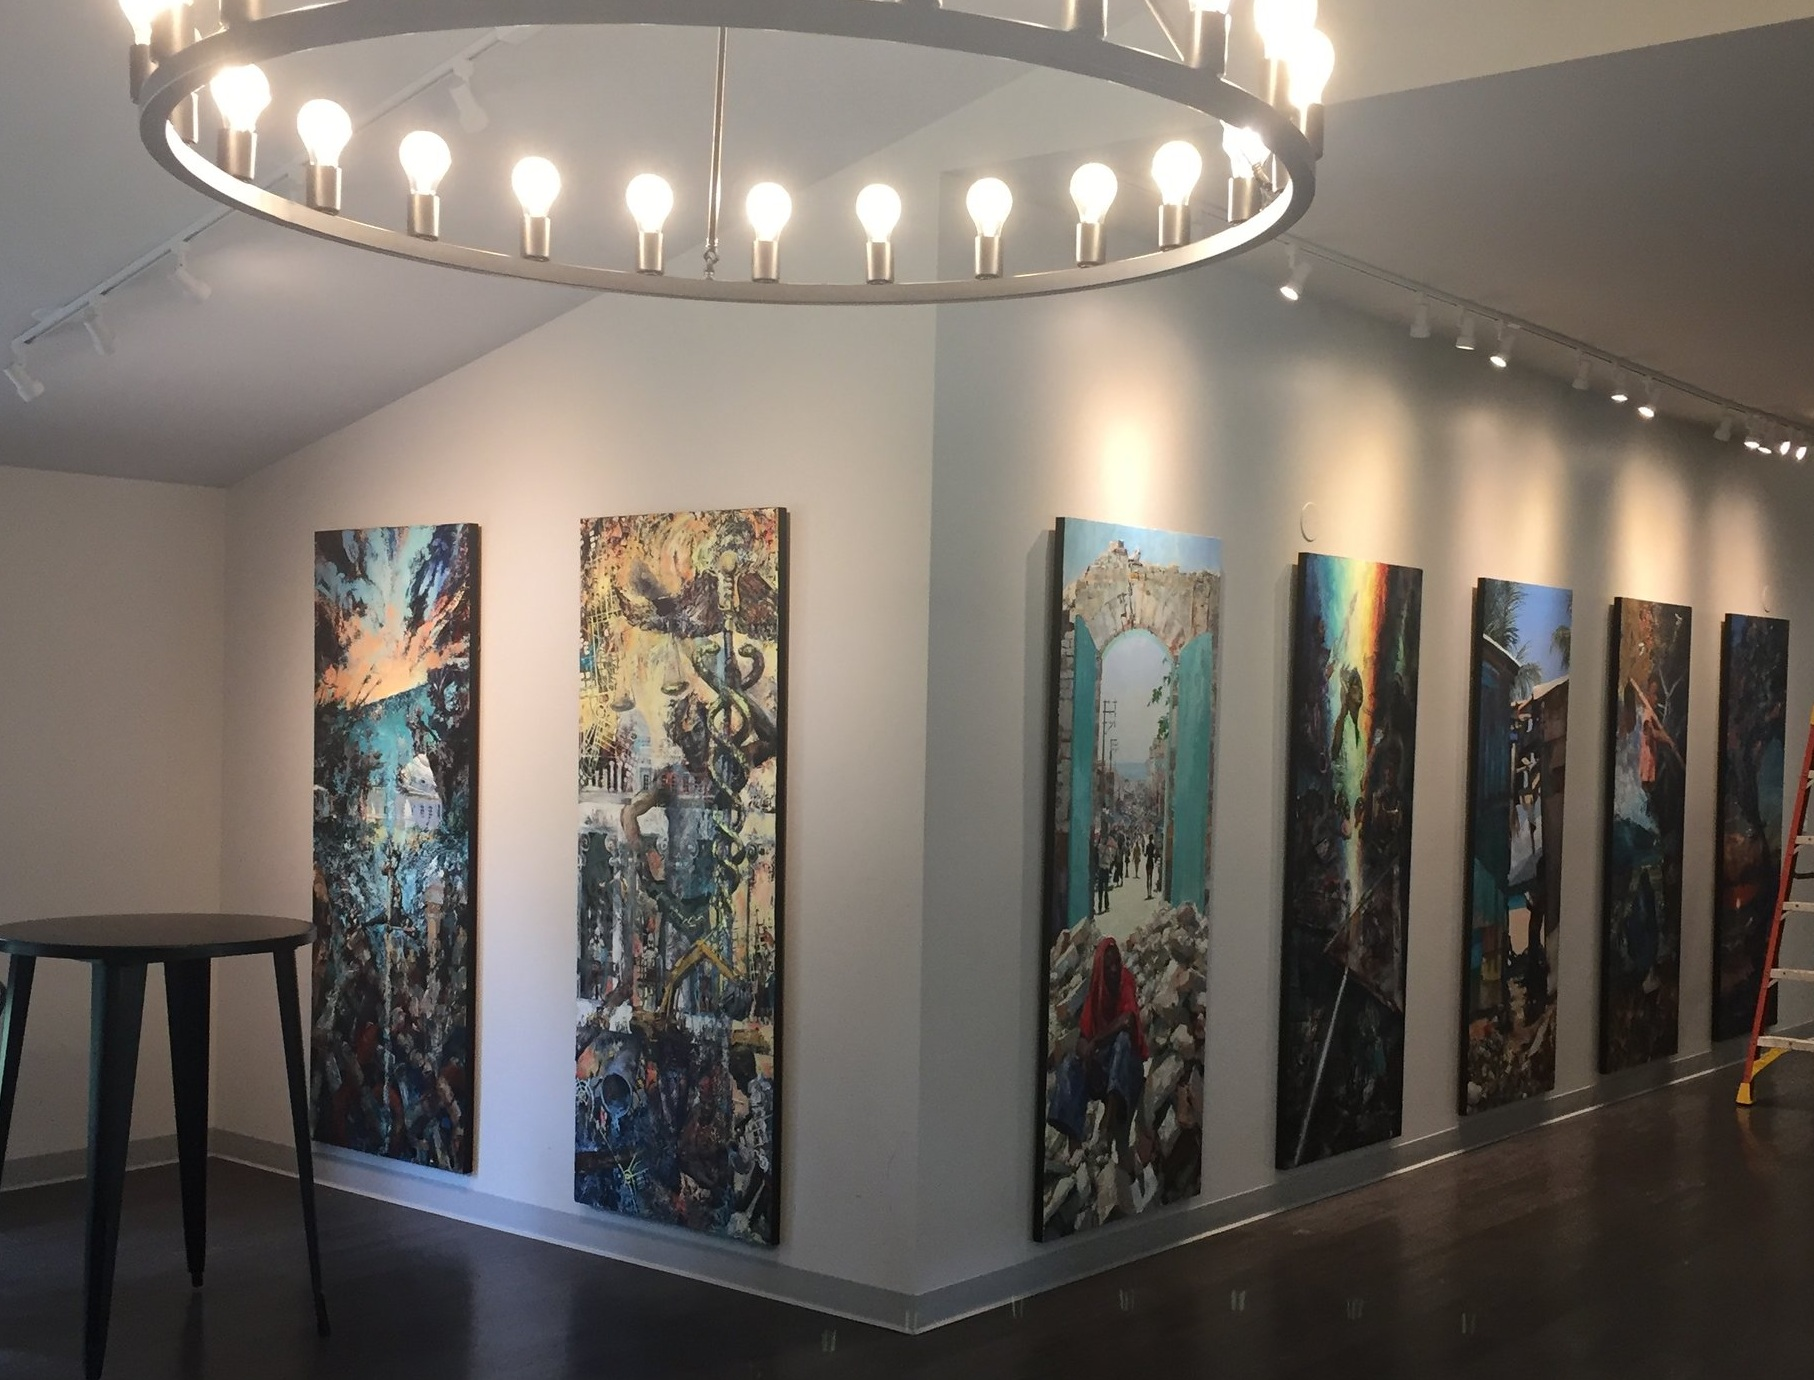 The Beyond the Ruins- Haiti show is currently on display at Threshold church in Weddington, NC and will be up for the summer. There will be an artist reception on Friday July 12 from 7-9pm. All are welcome.